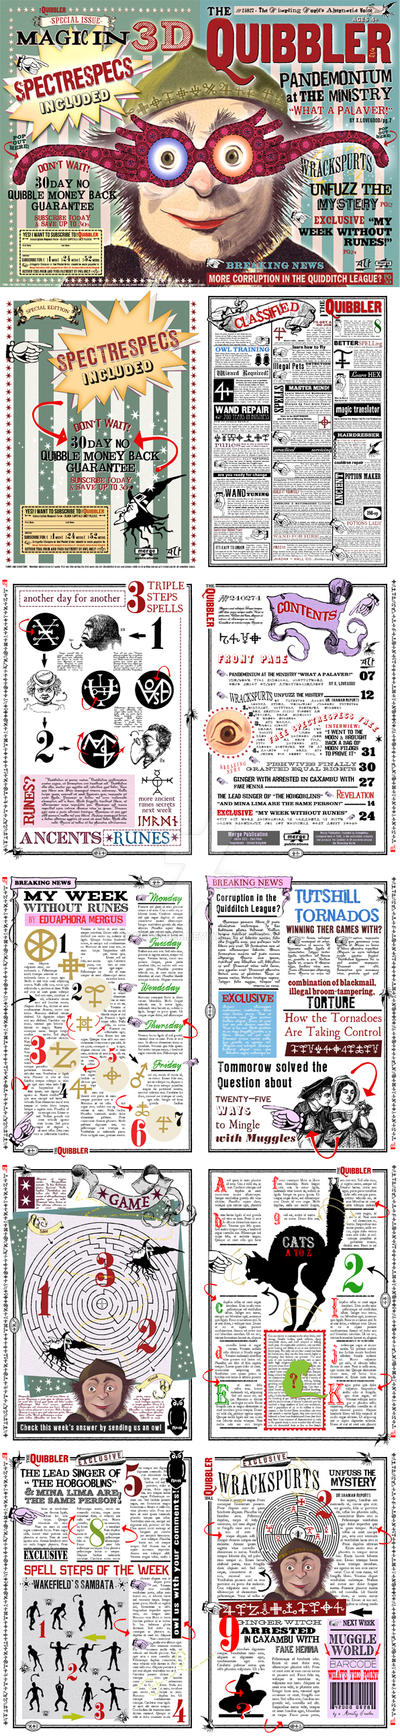 Quibbler Spectrespecs Replica Version with pages. by WiwinJer